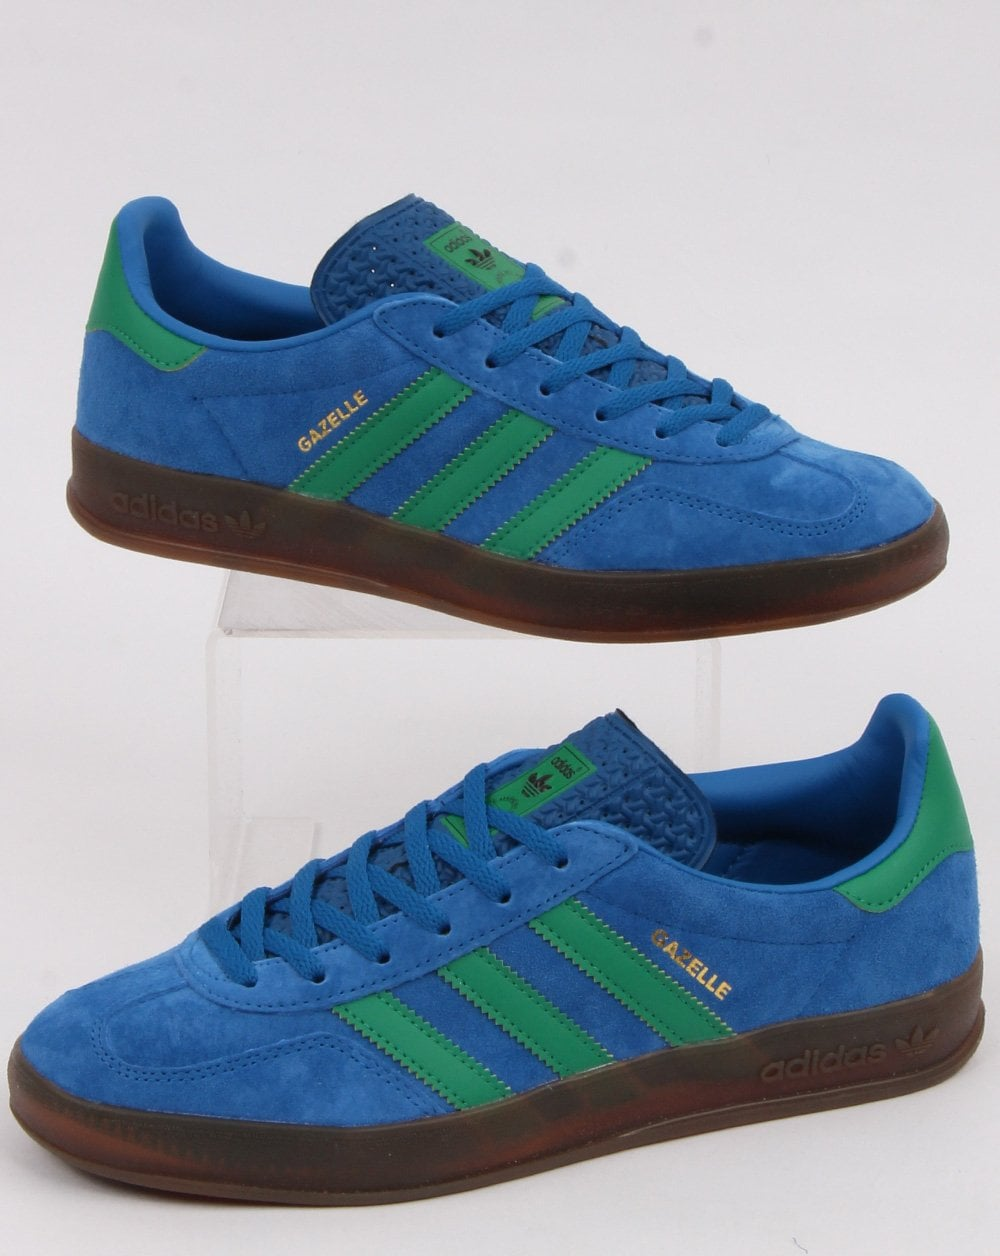 adidas Gazelle Indoor Trainers in Blue